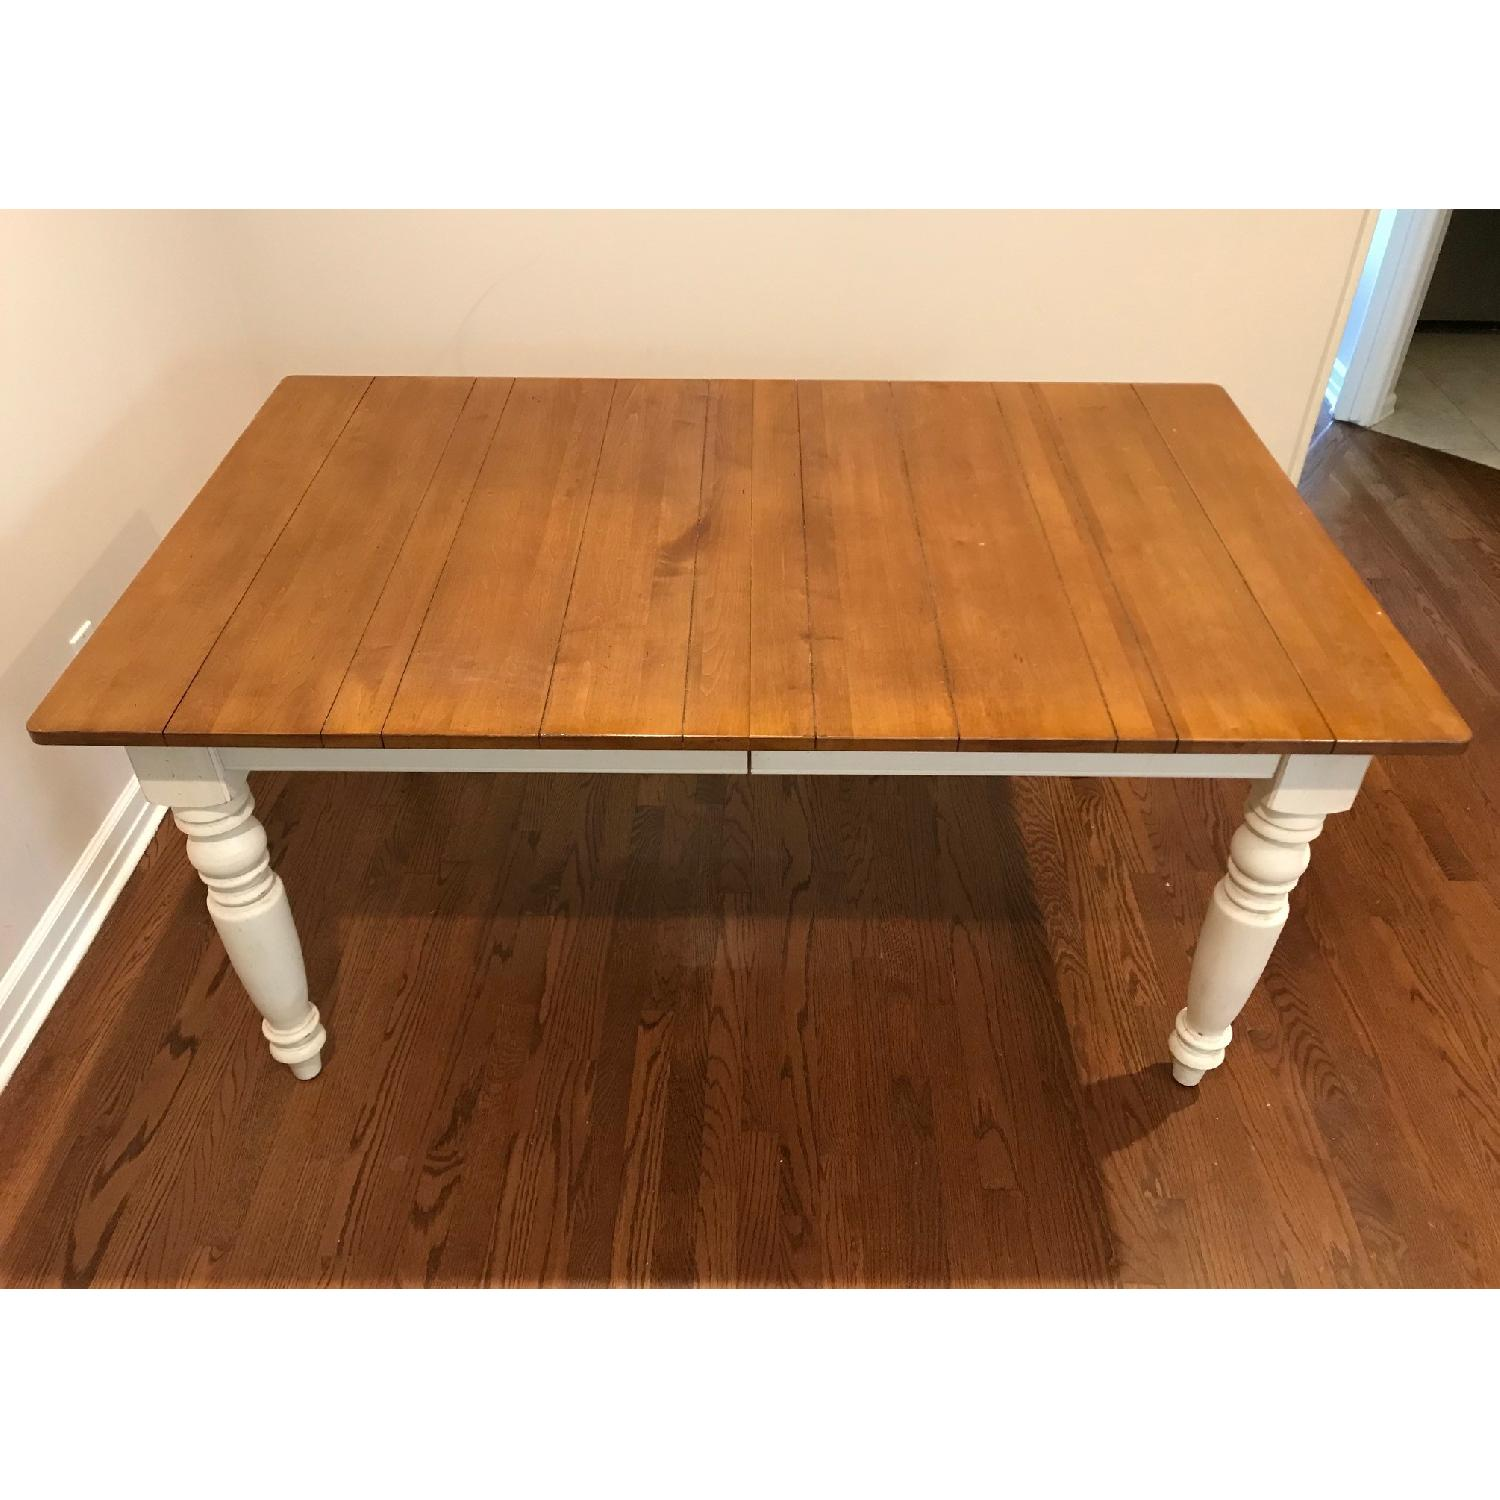 Ethan Allen Miller Dining Table - image-1